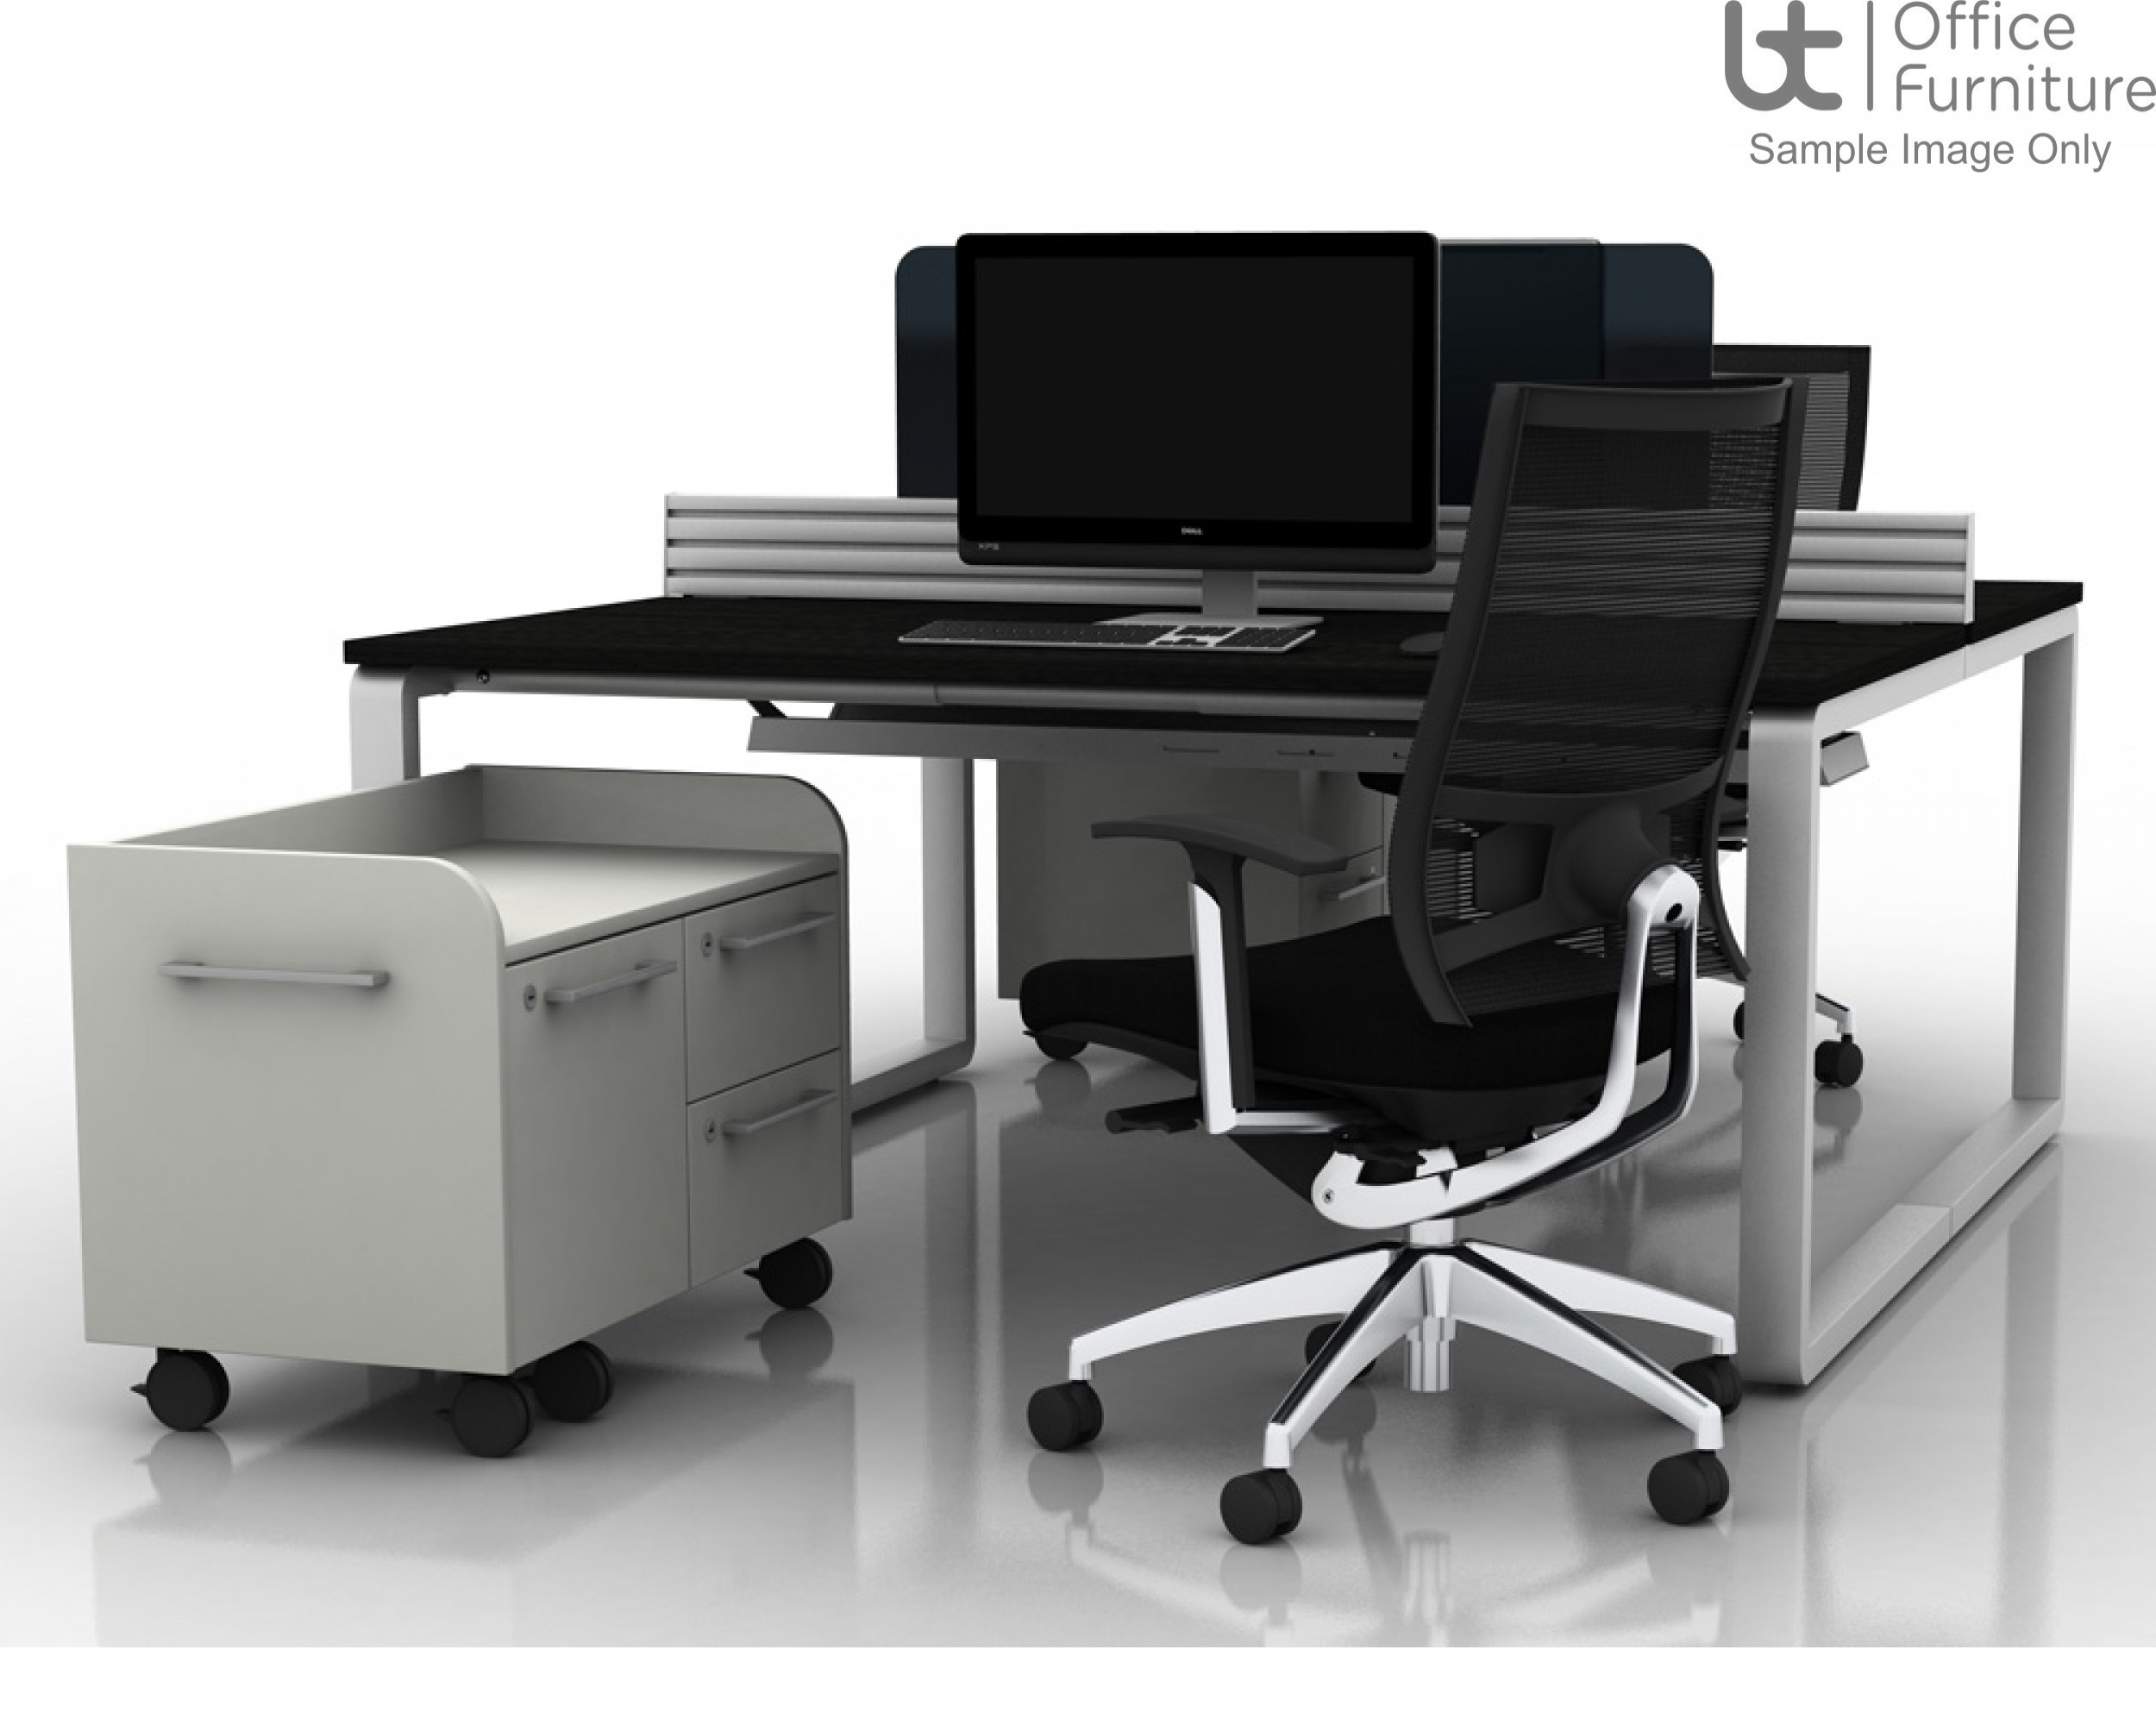 Arc Crescent Desk 800D x 600Dmm - Right Hand Illustrated